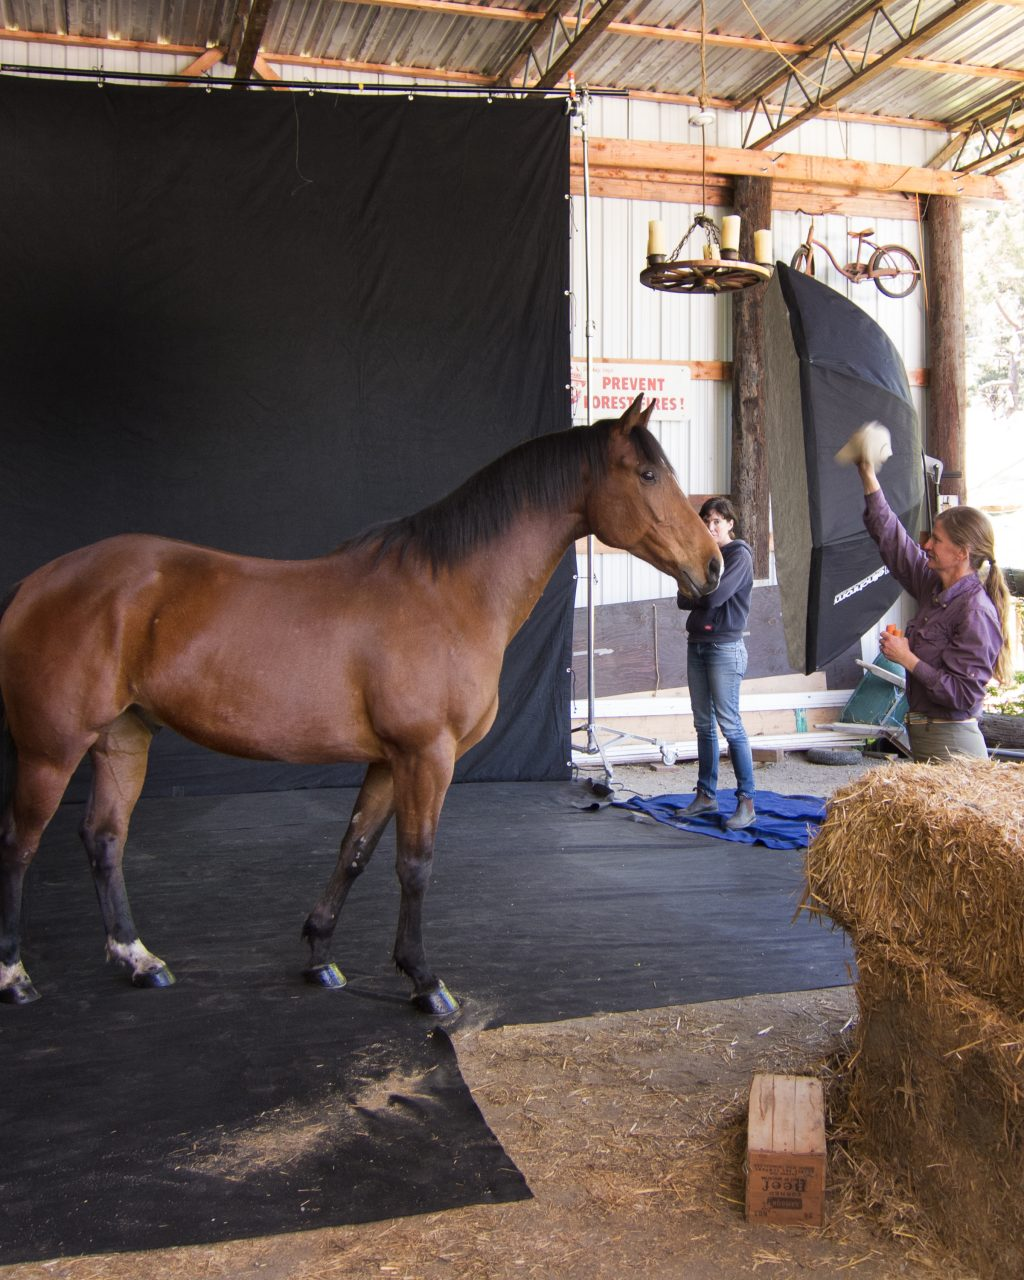 Behind the scenes of an equine photo shoot at Square Peg, a rescue horse ranch.